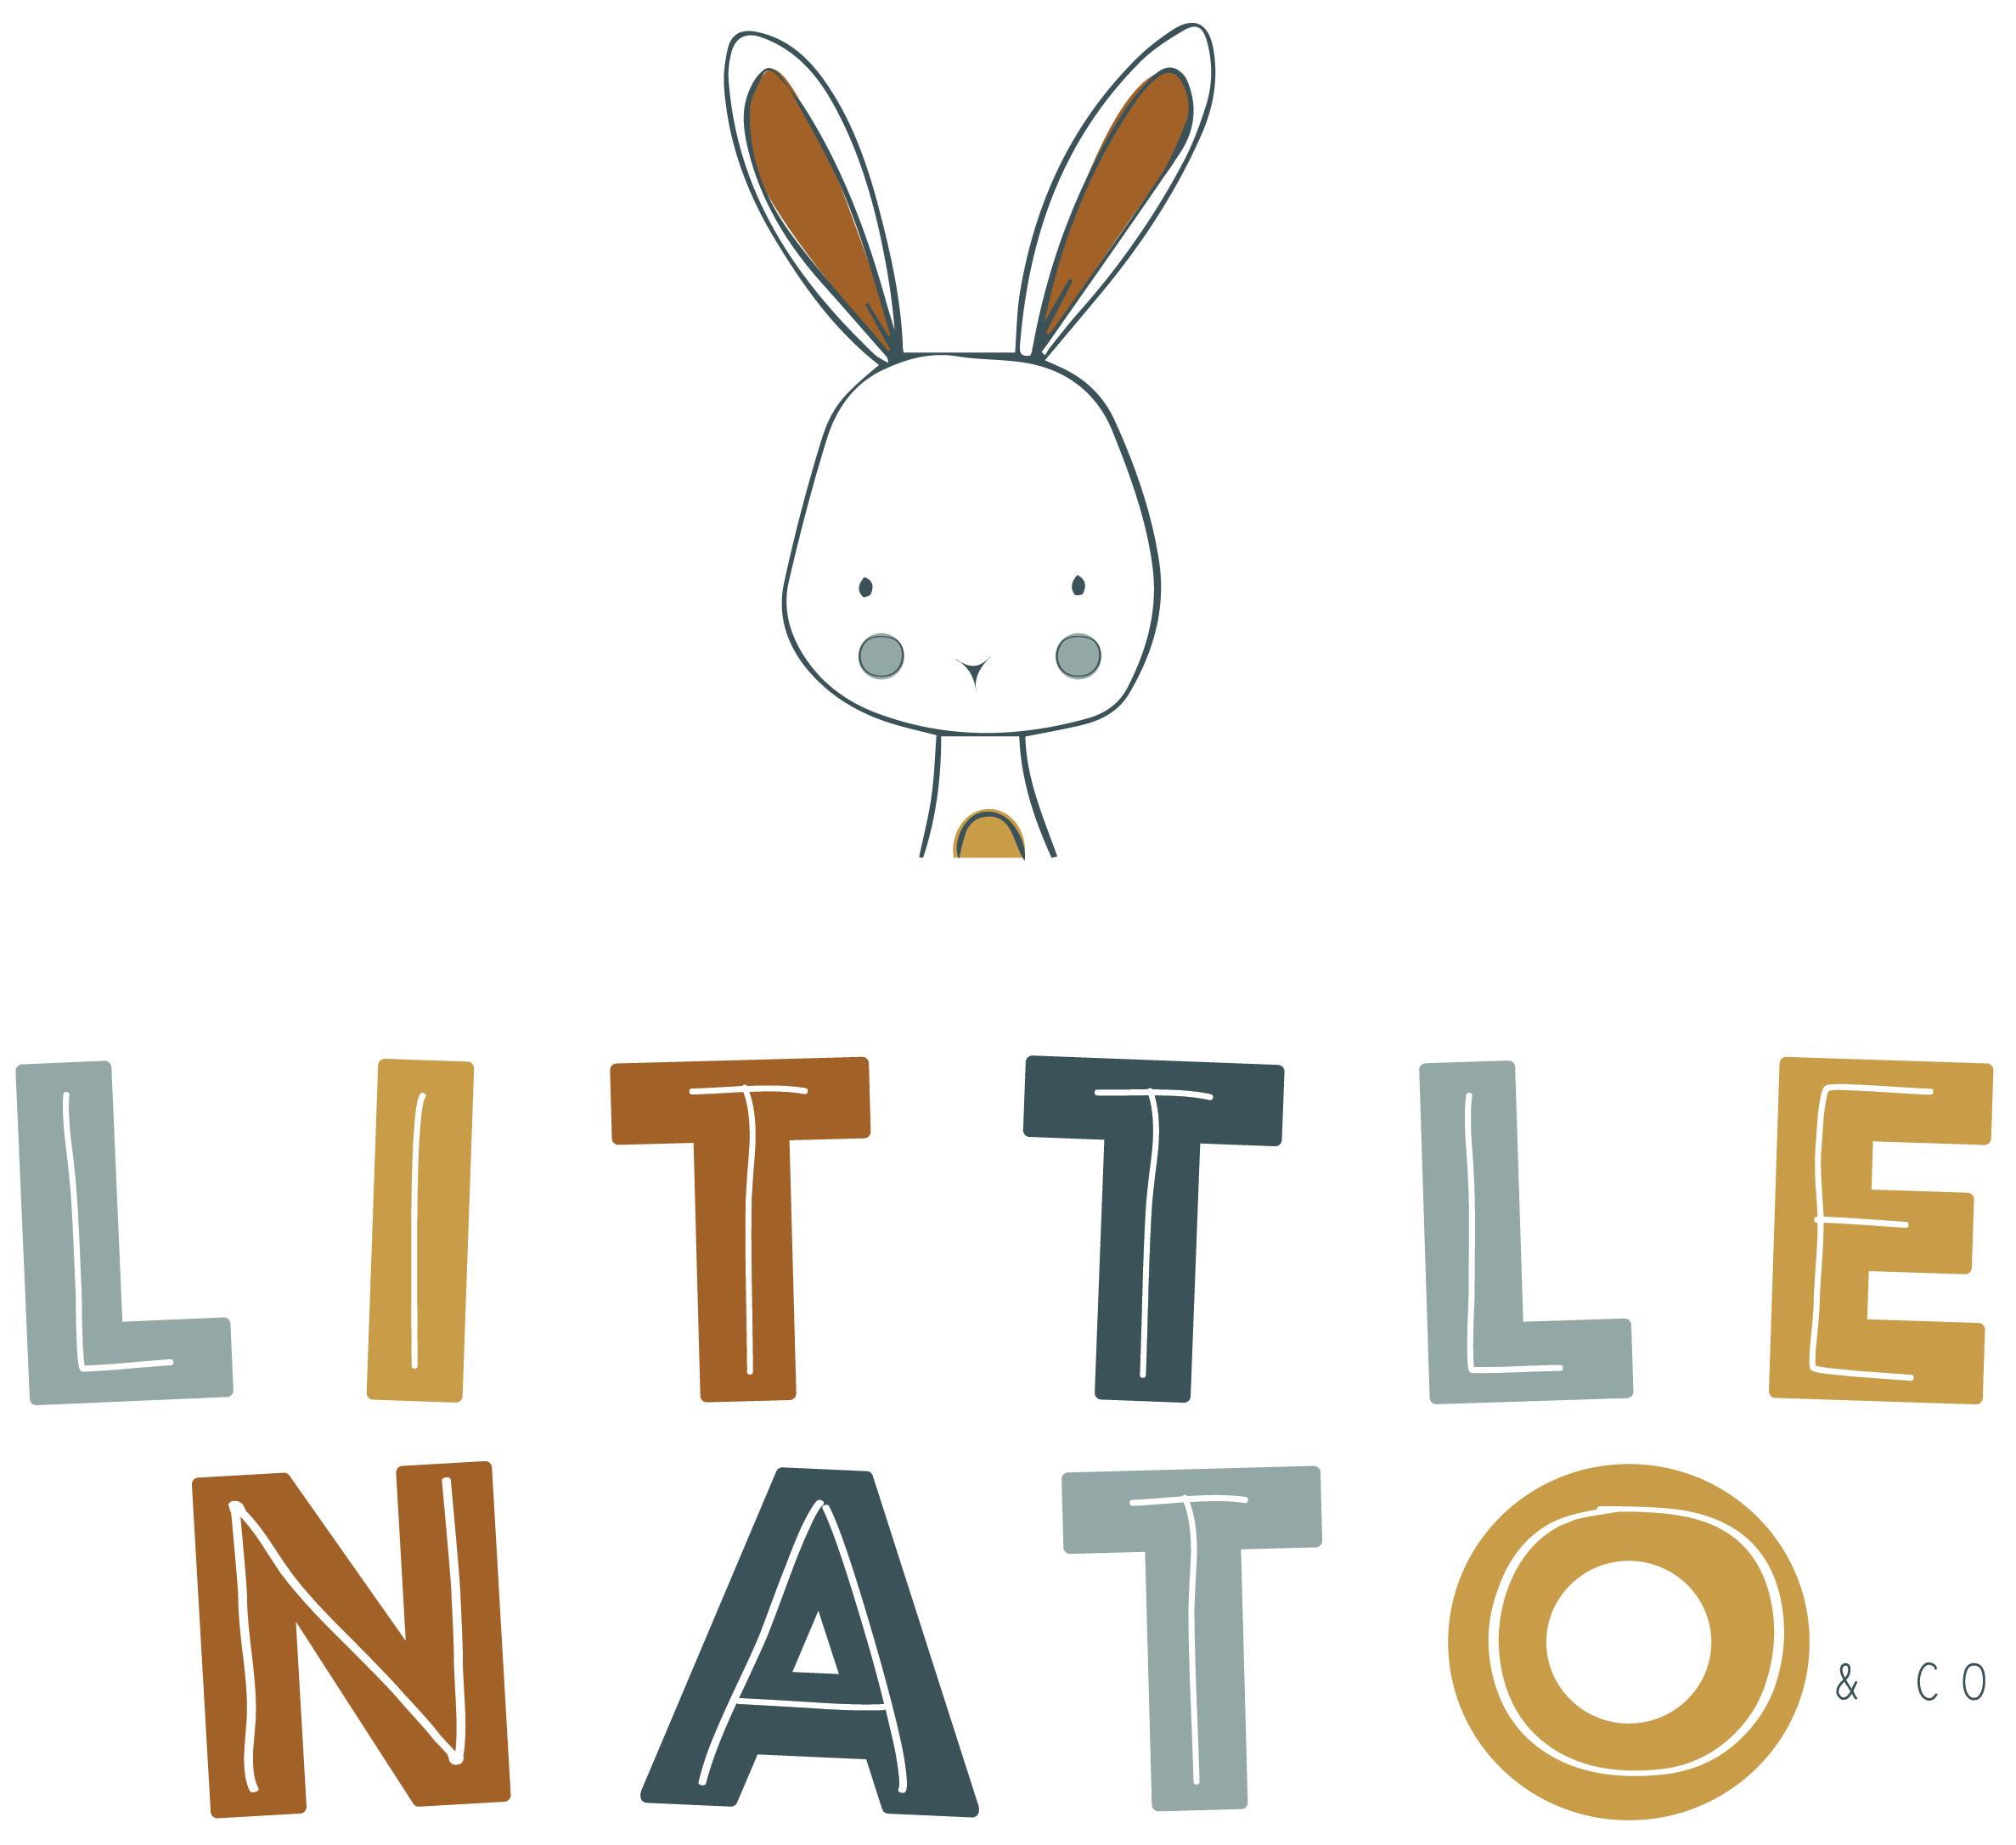 Little Nato and Co